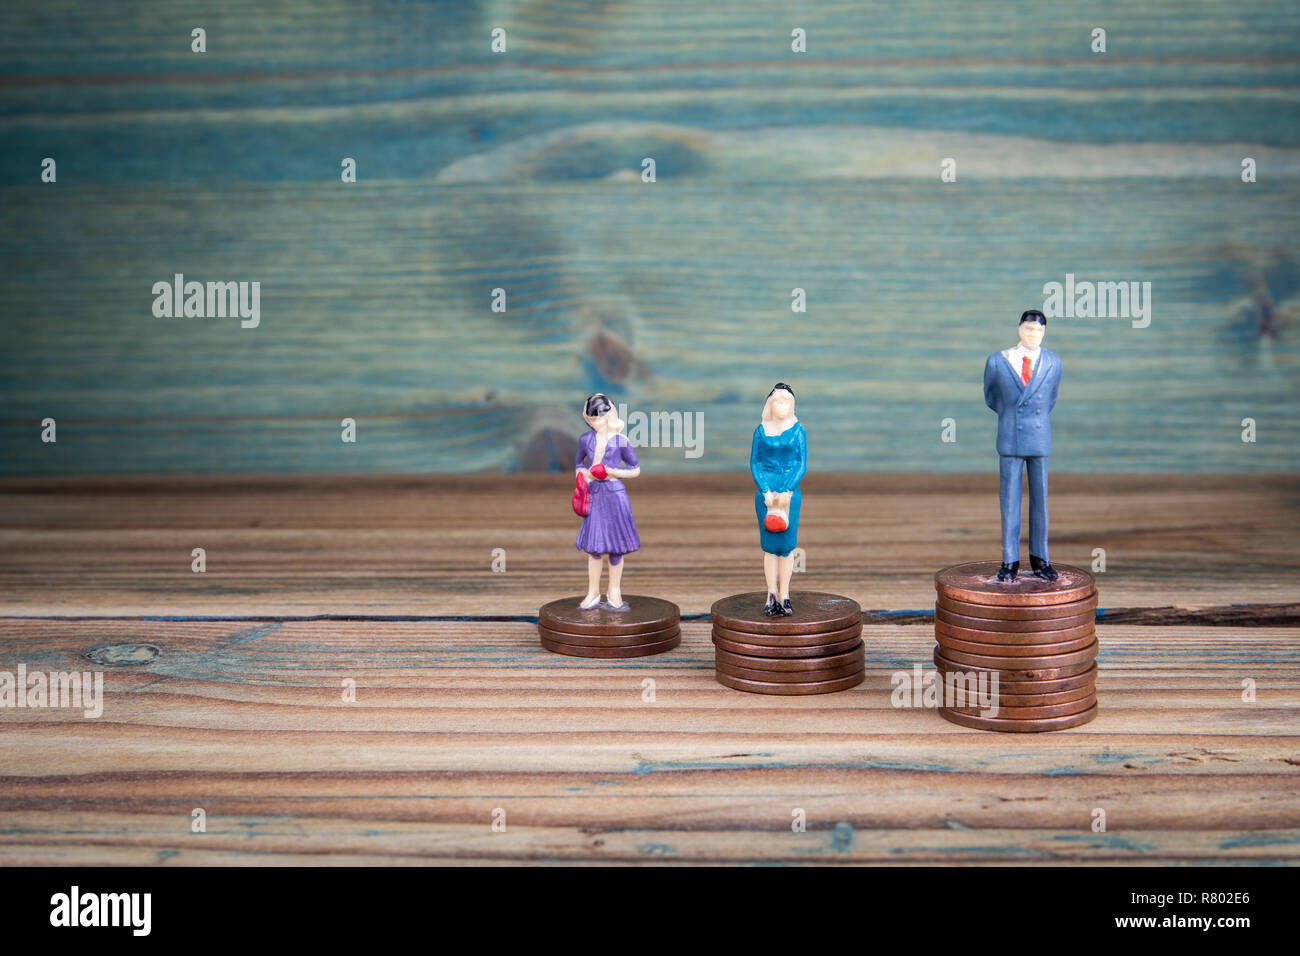 Miniature people standing on piles of coins - Stock Image